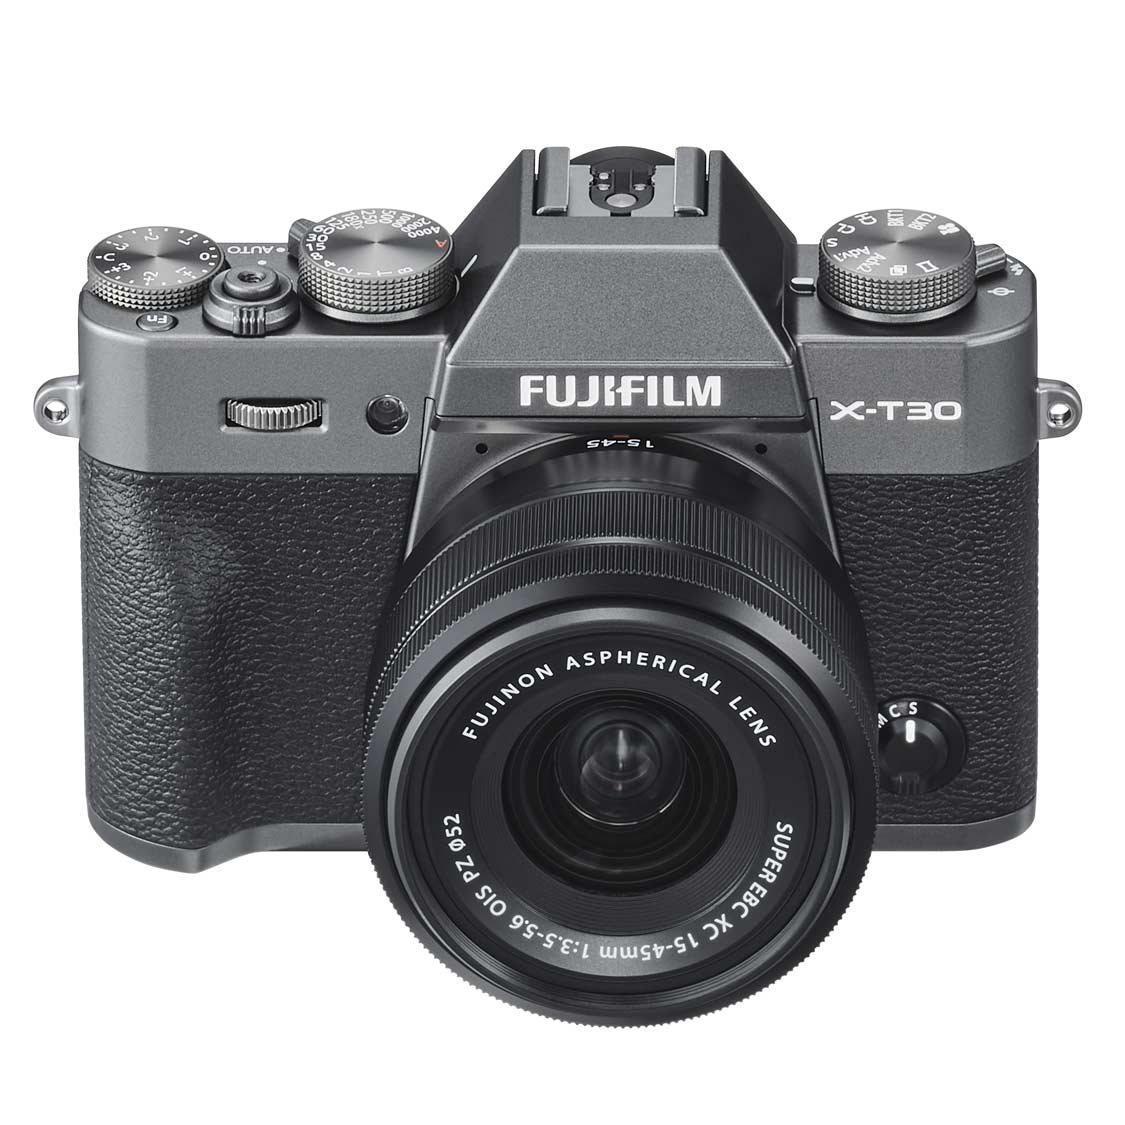 Fujifilm X-T30 Camera (charcoal) with 15-45mm f3.5-5.6 Lens